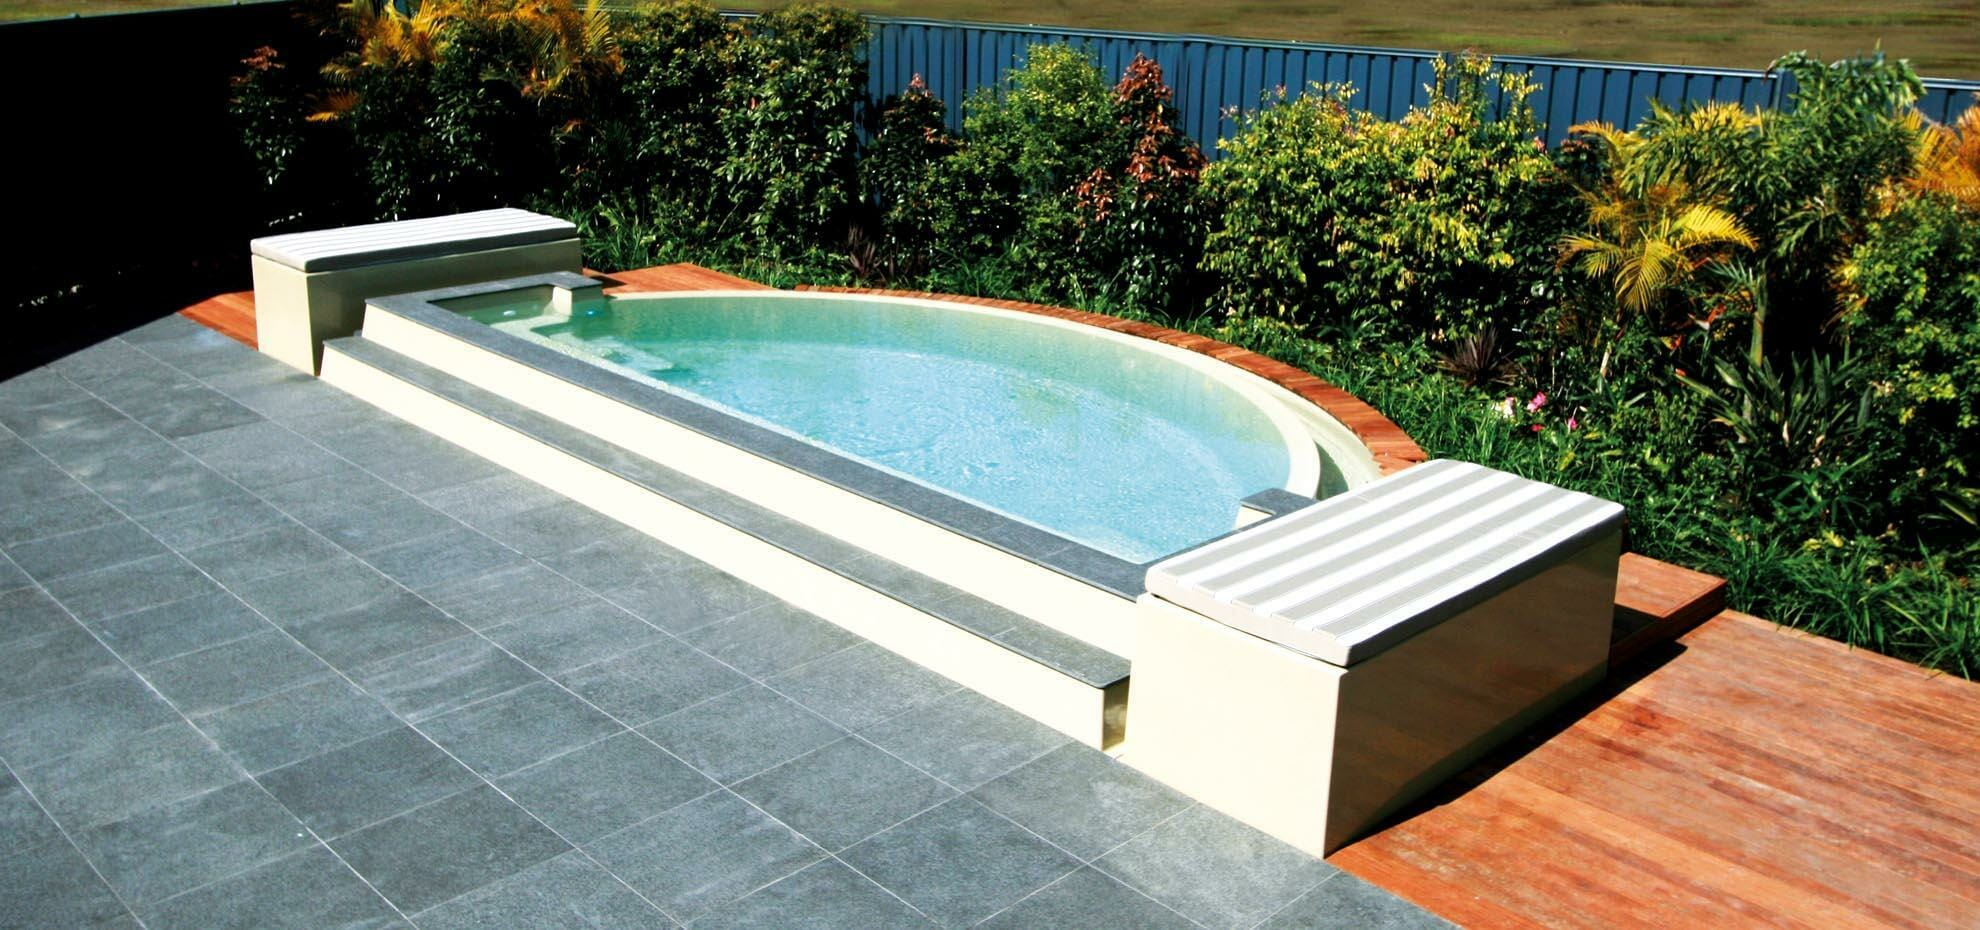 Horizon style fibreglass pool with infinity feature and coping by Leisure Pools